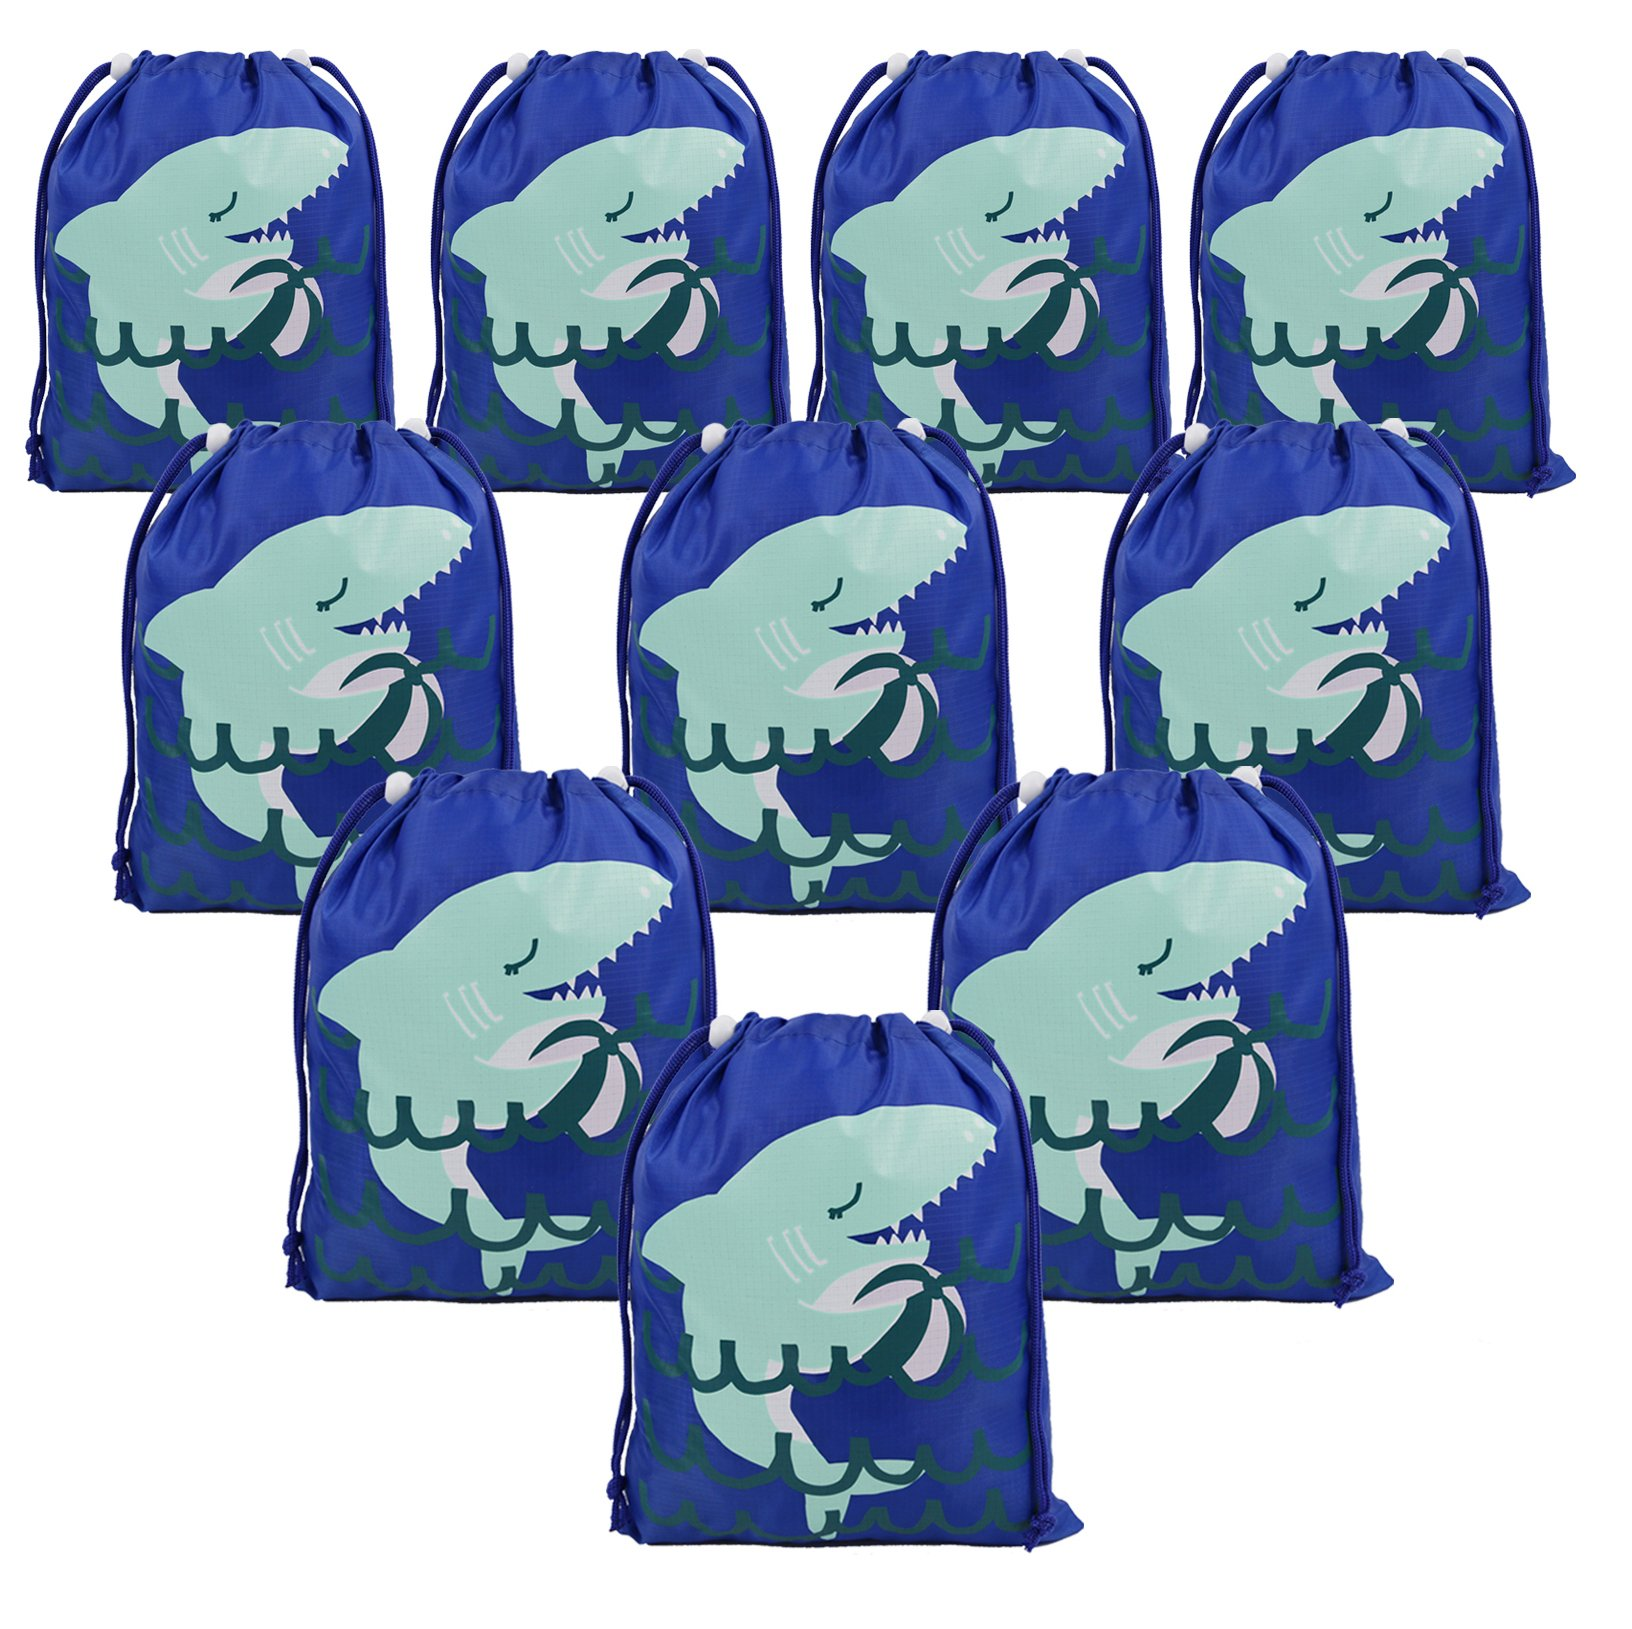 Shark Party Supplies Favors Bags for Kids Boys Girls, 10 Pack Drawstring Goodie Treat Bags for Birthday Party Gifts by BeeGreen